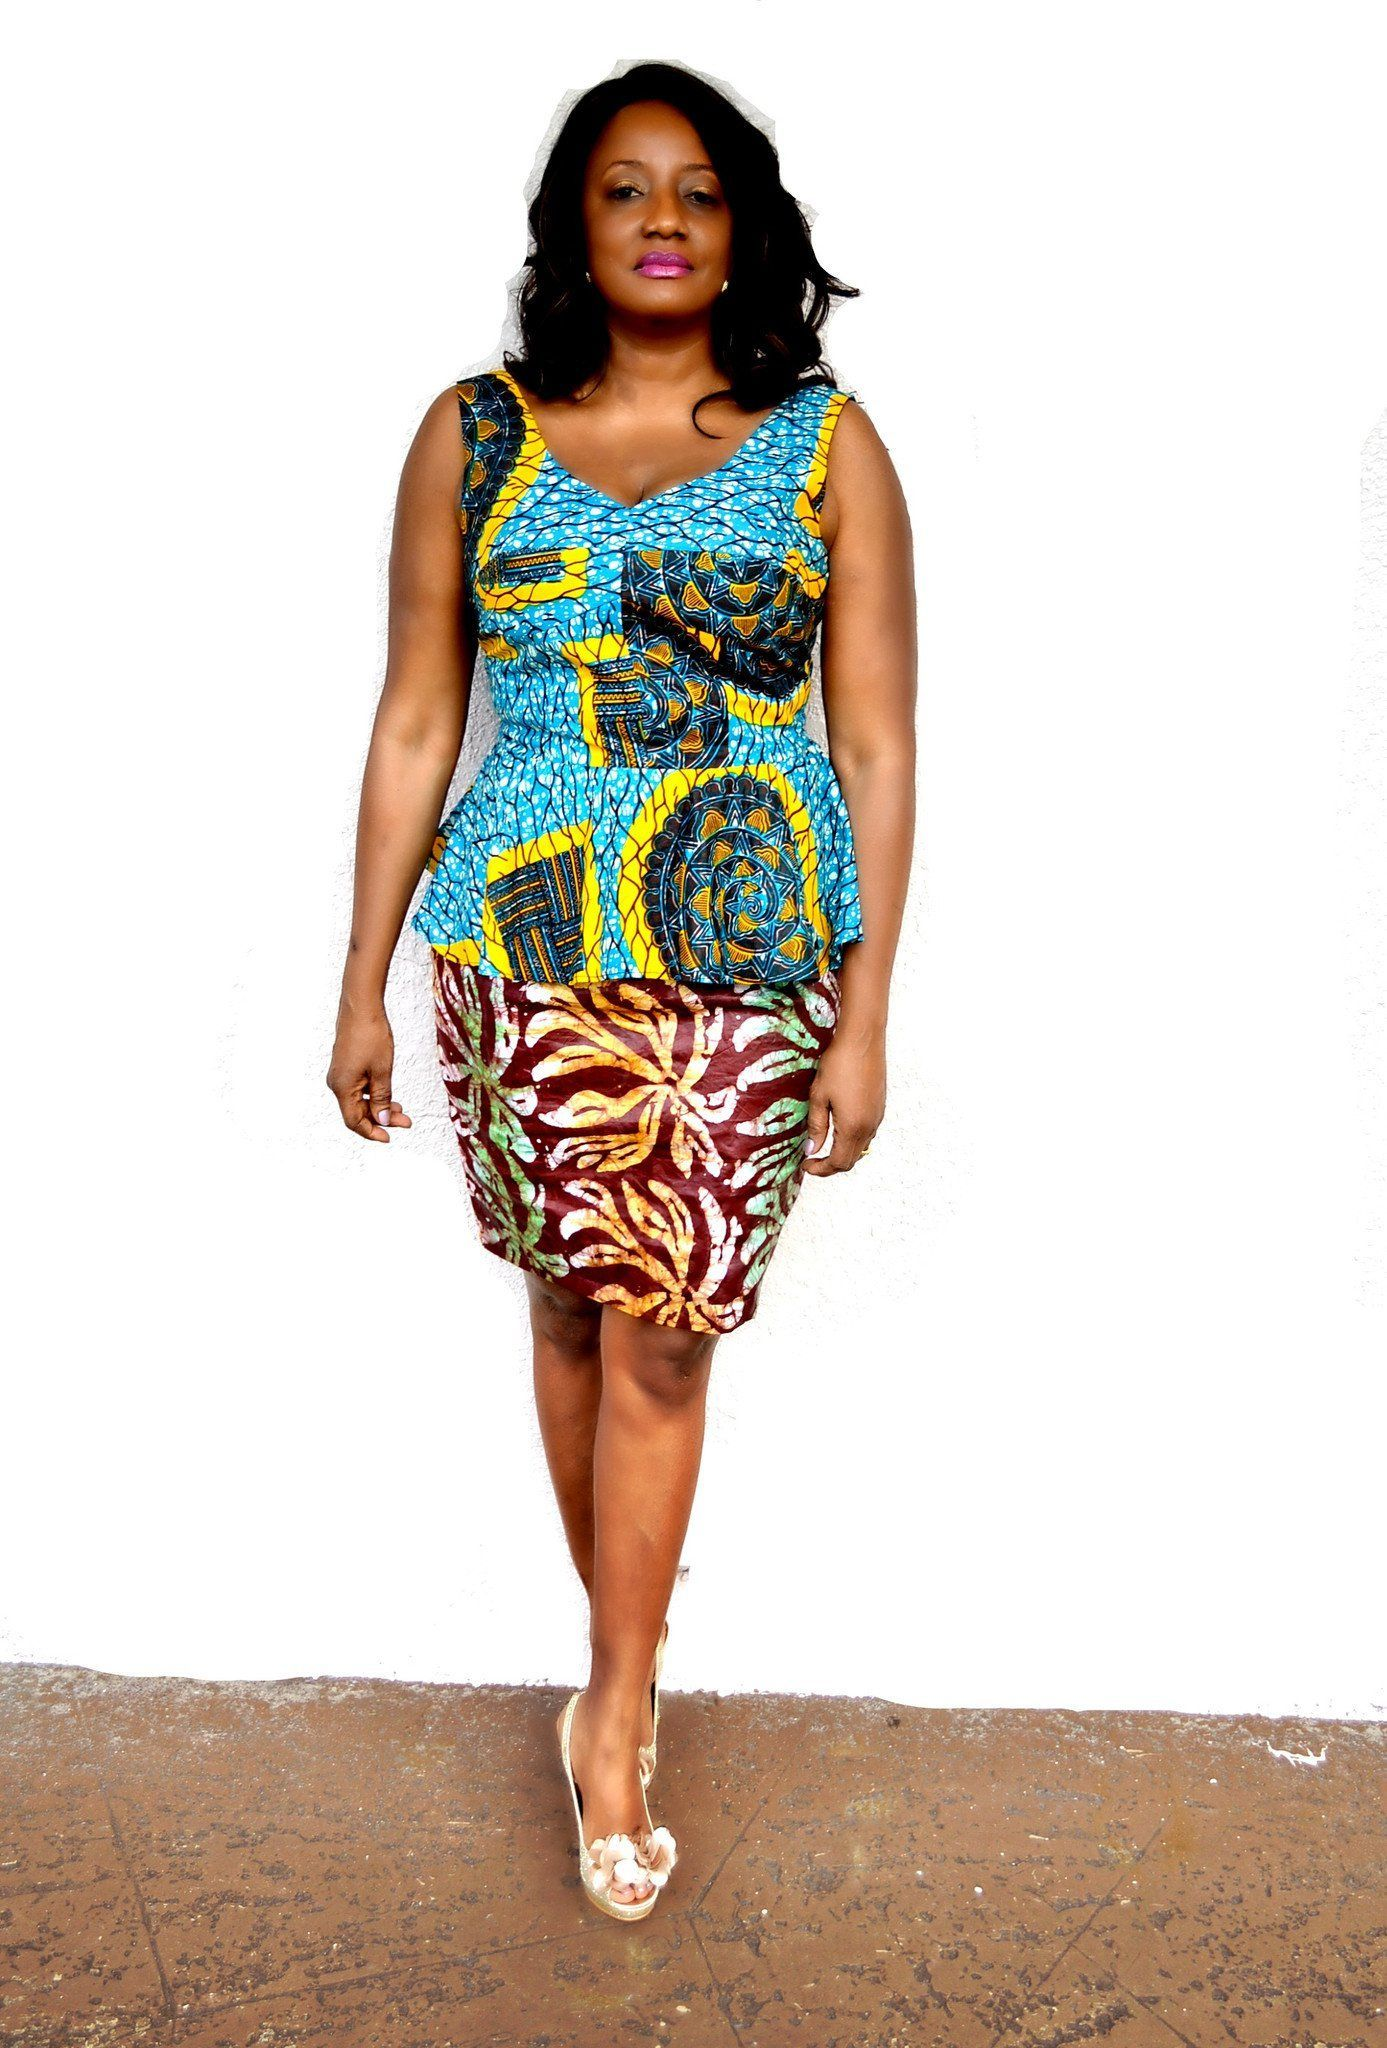 Put on some ankara and show it more respect give scary parts some